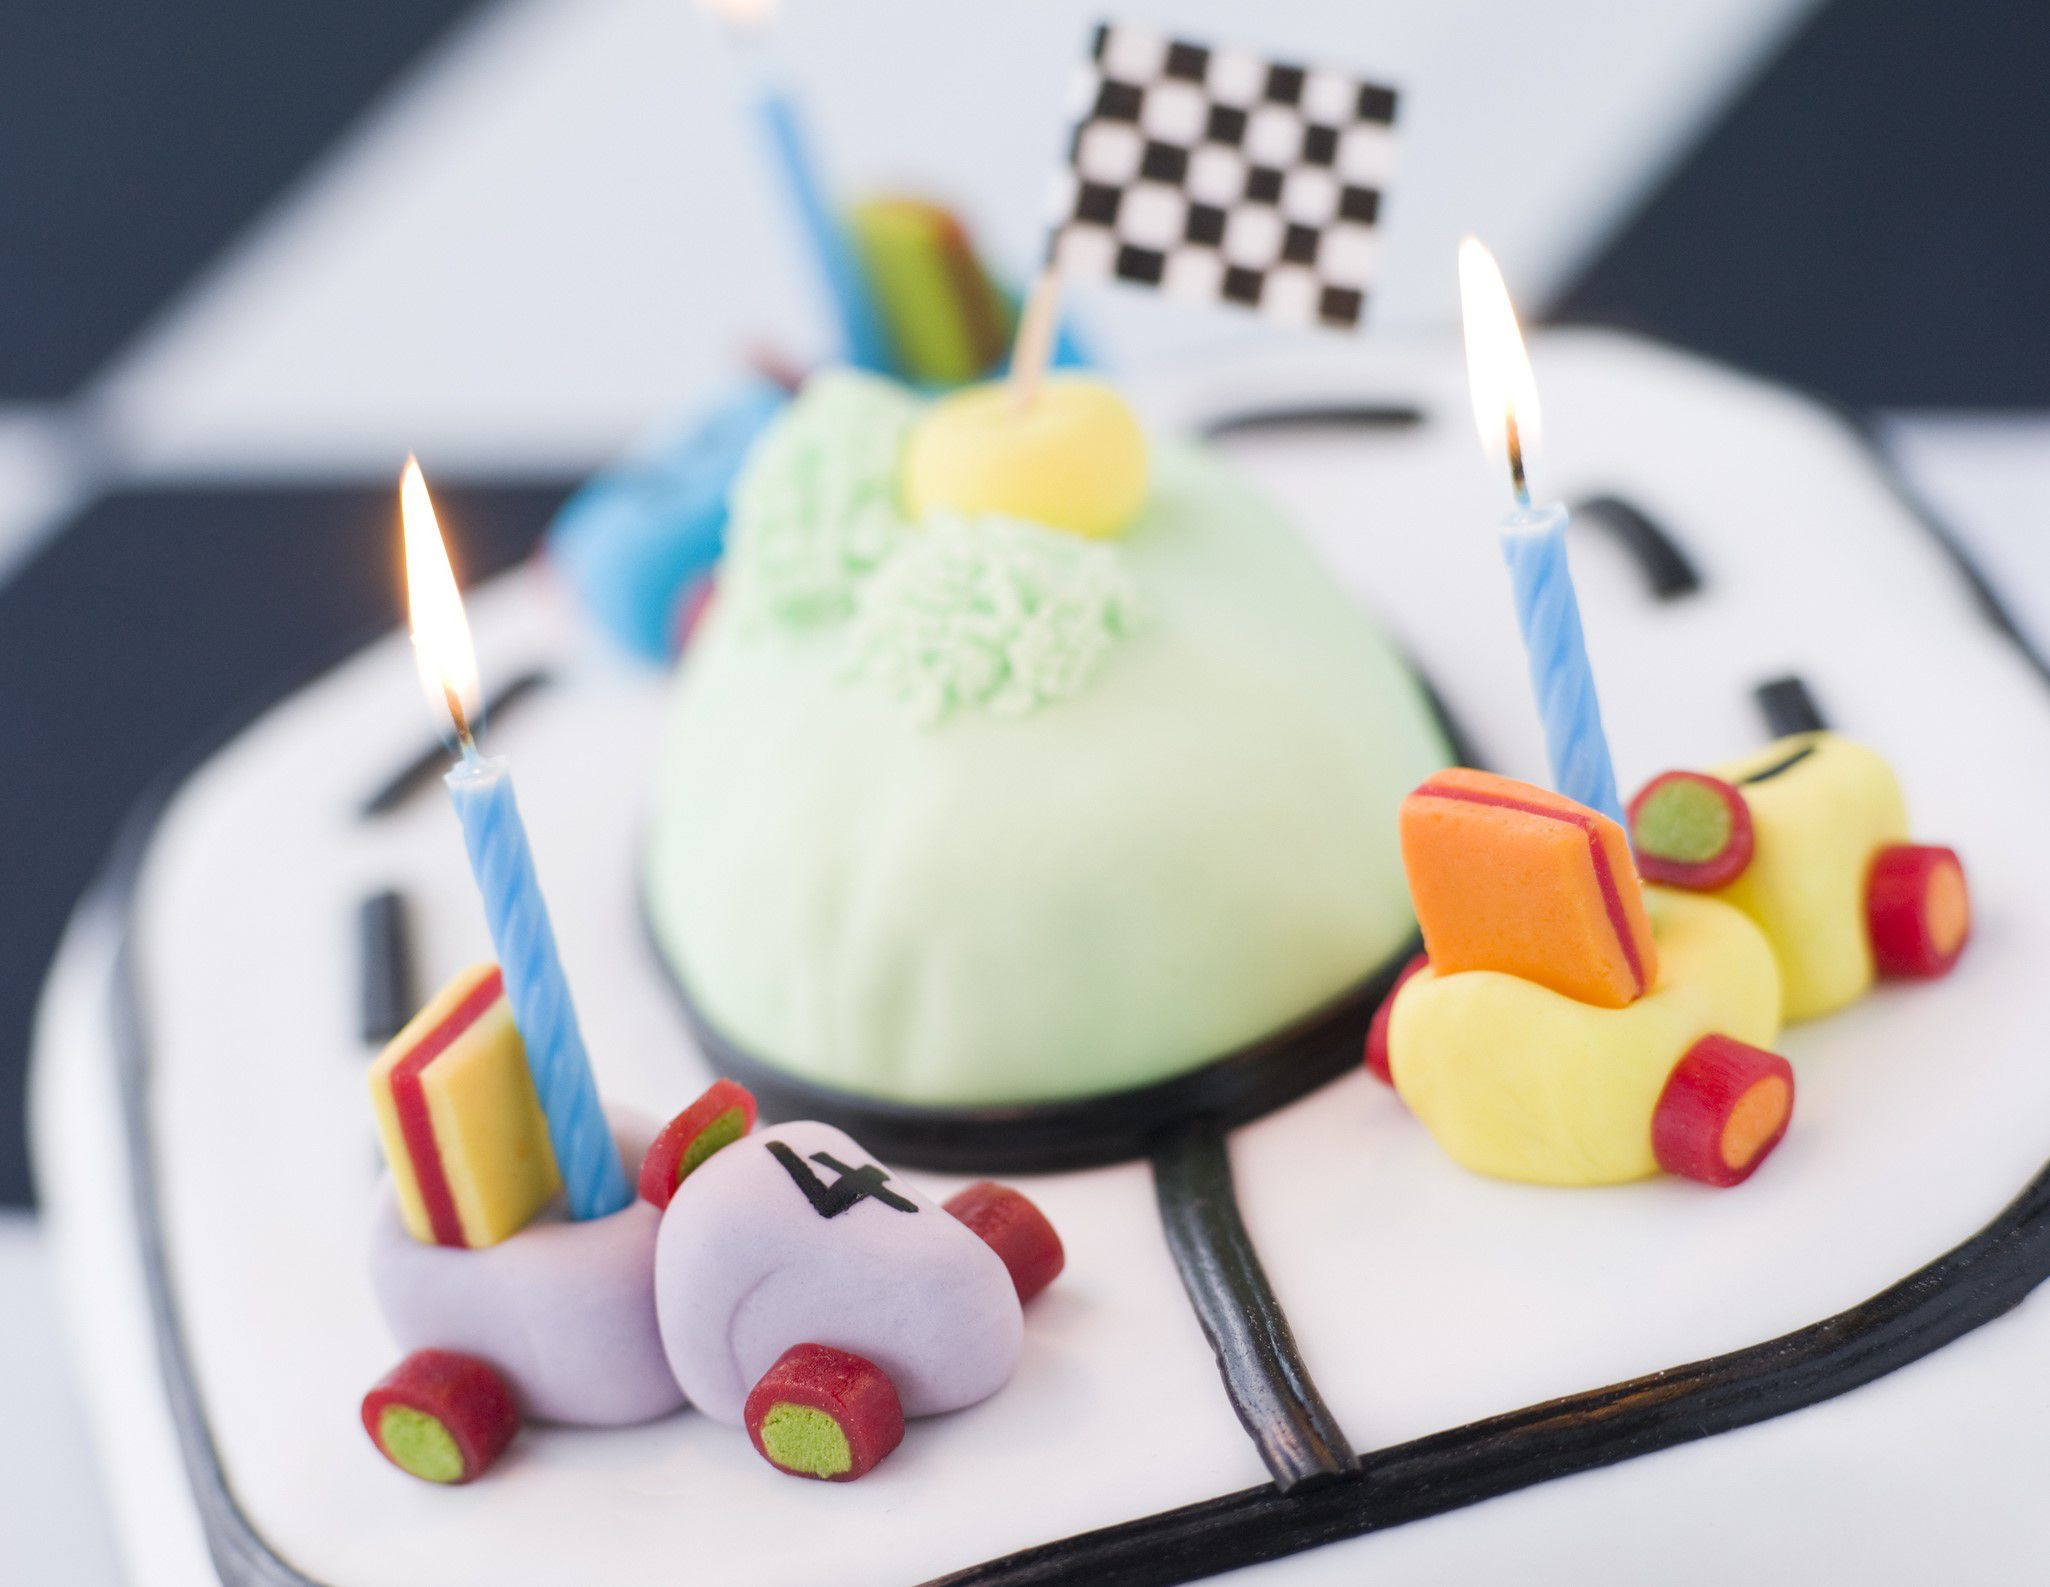 Cars made from icing and sweets on top of a cake race track